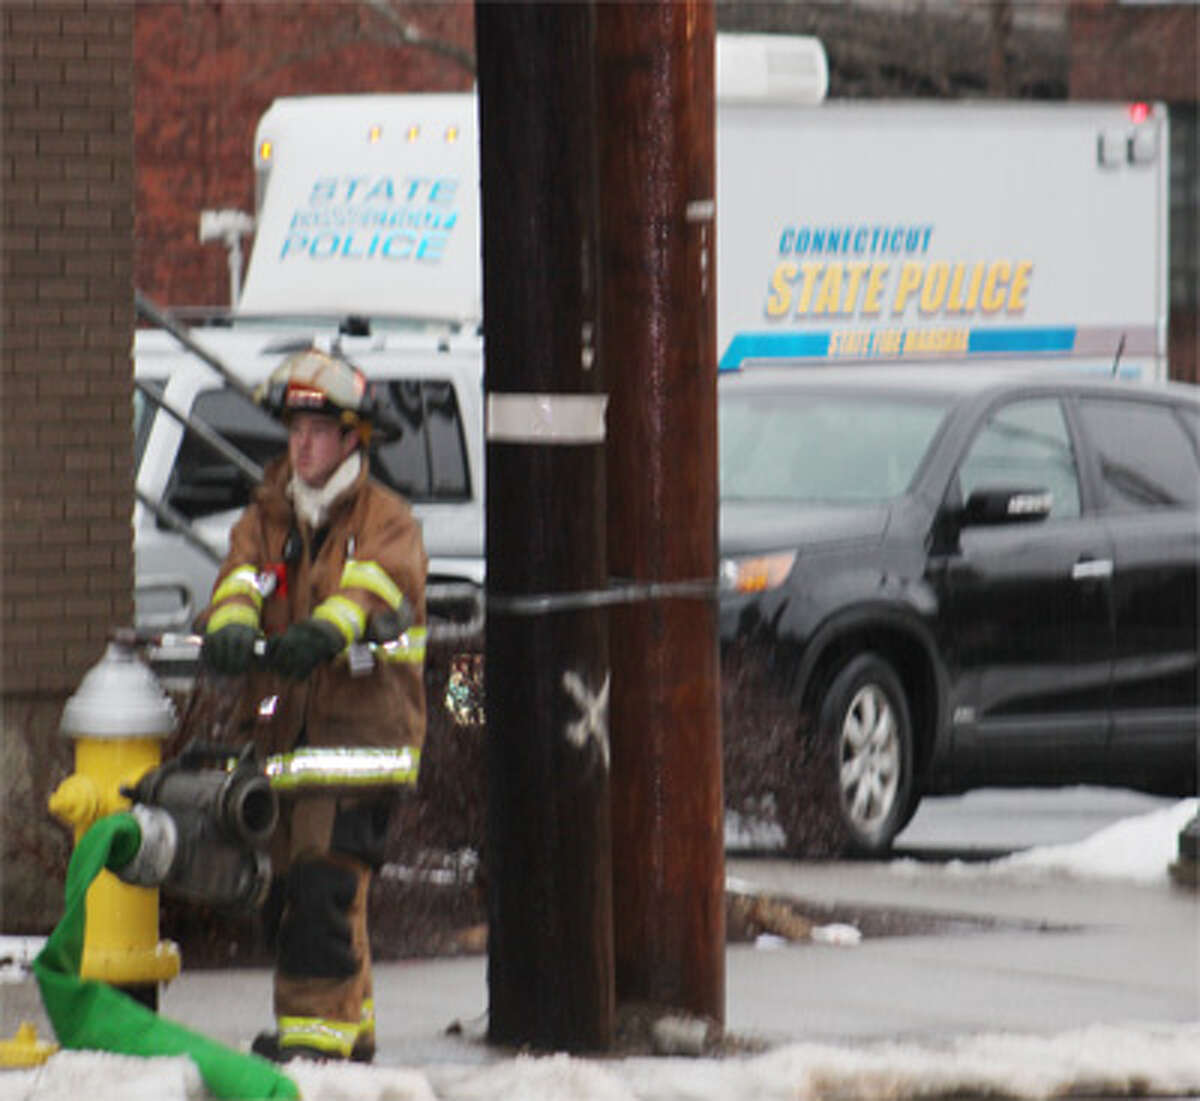 A firefighter taps into a fire hydrant on Center Street, just off Howe Avenue toward the Housatonic River. Note the State Police Investigation van behind him, in the Dunkin' Donuts rear parking lot.